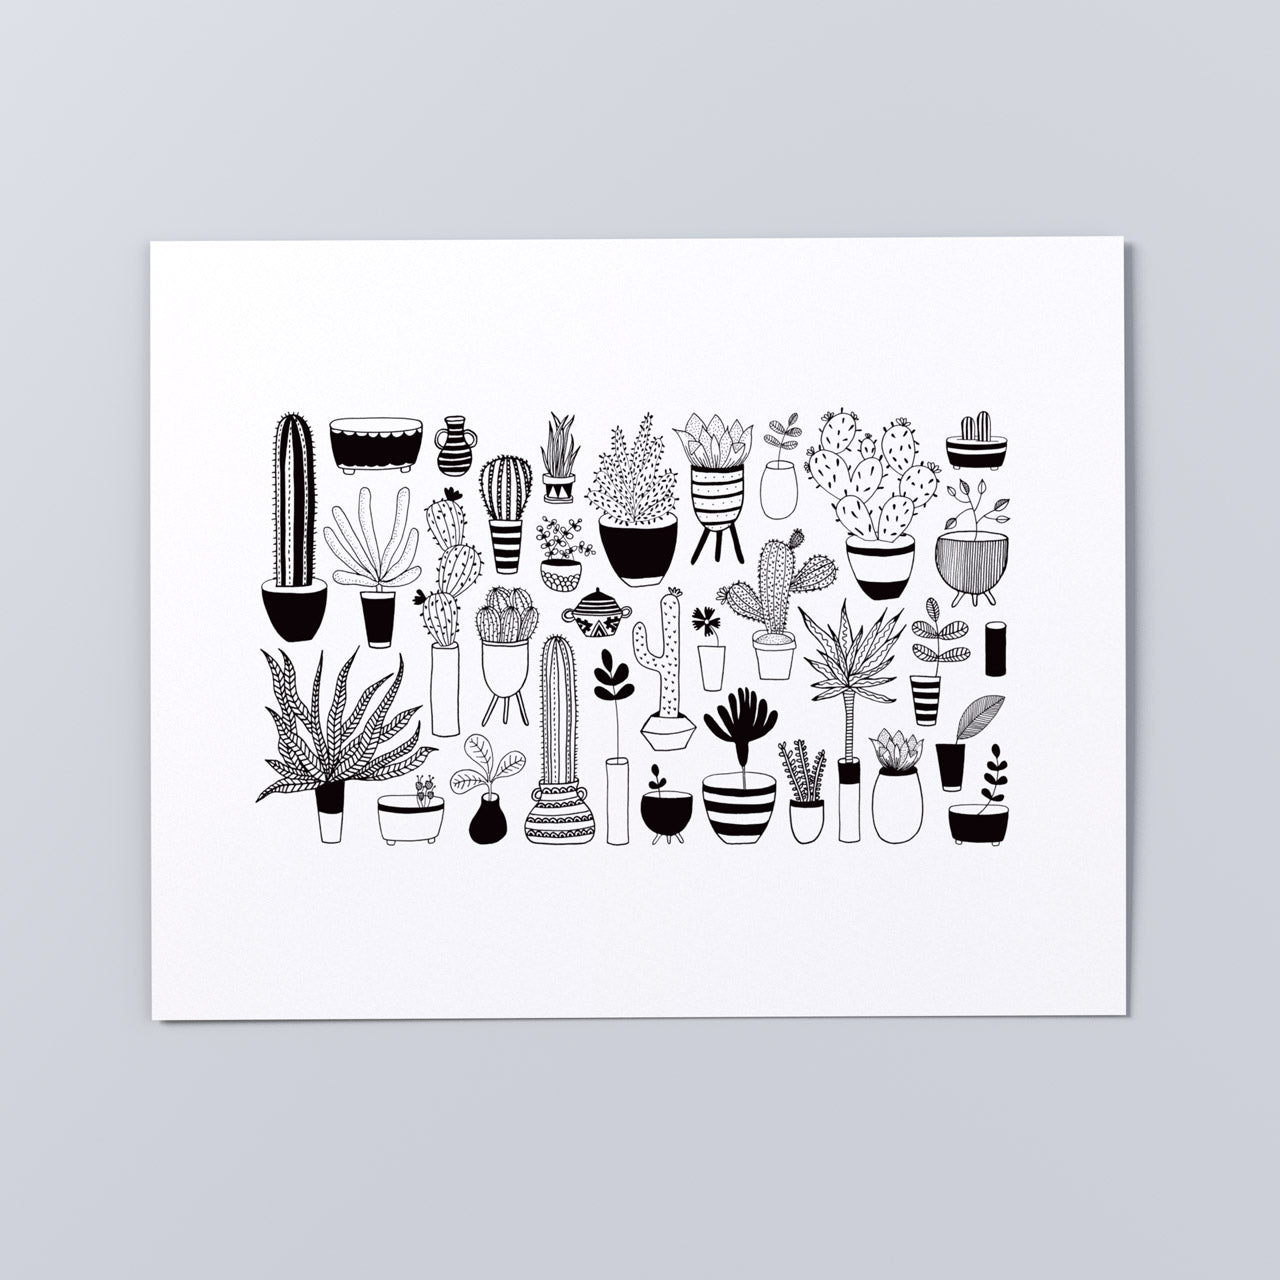 'All the Plants' Print, multiple sizes